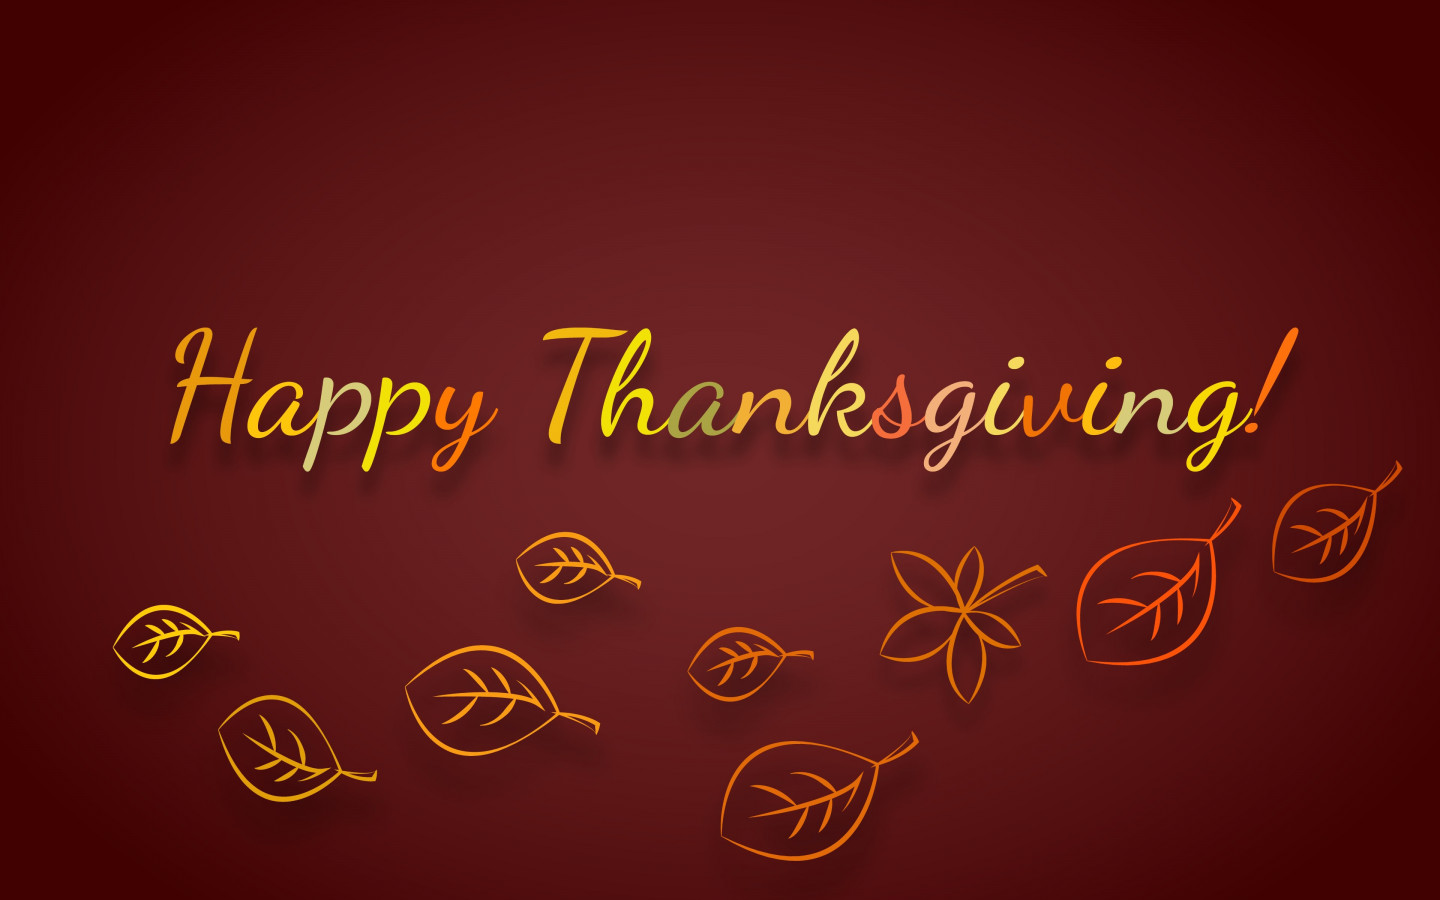 Happy Thanksgiving wallpaper 1440x900